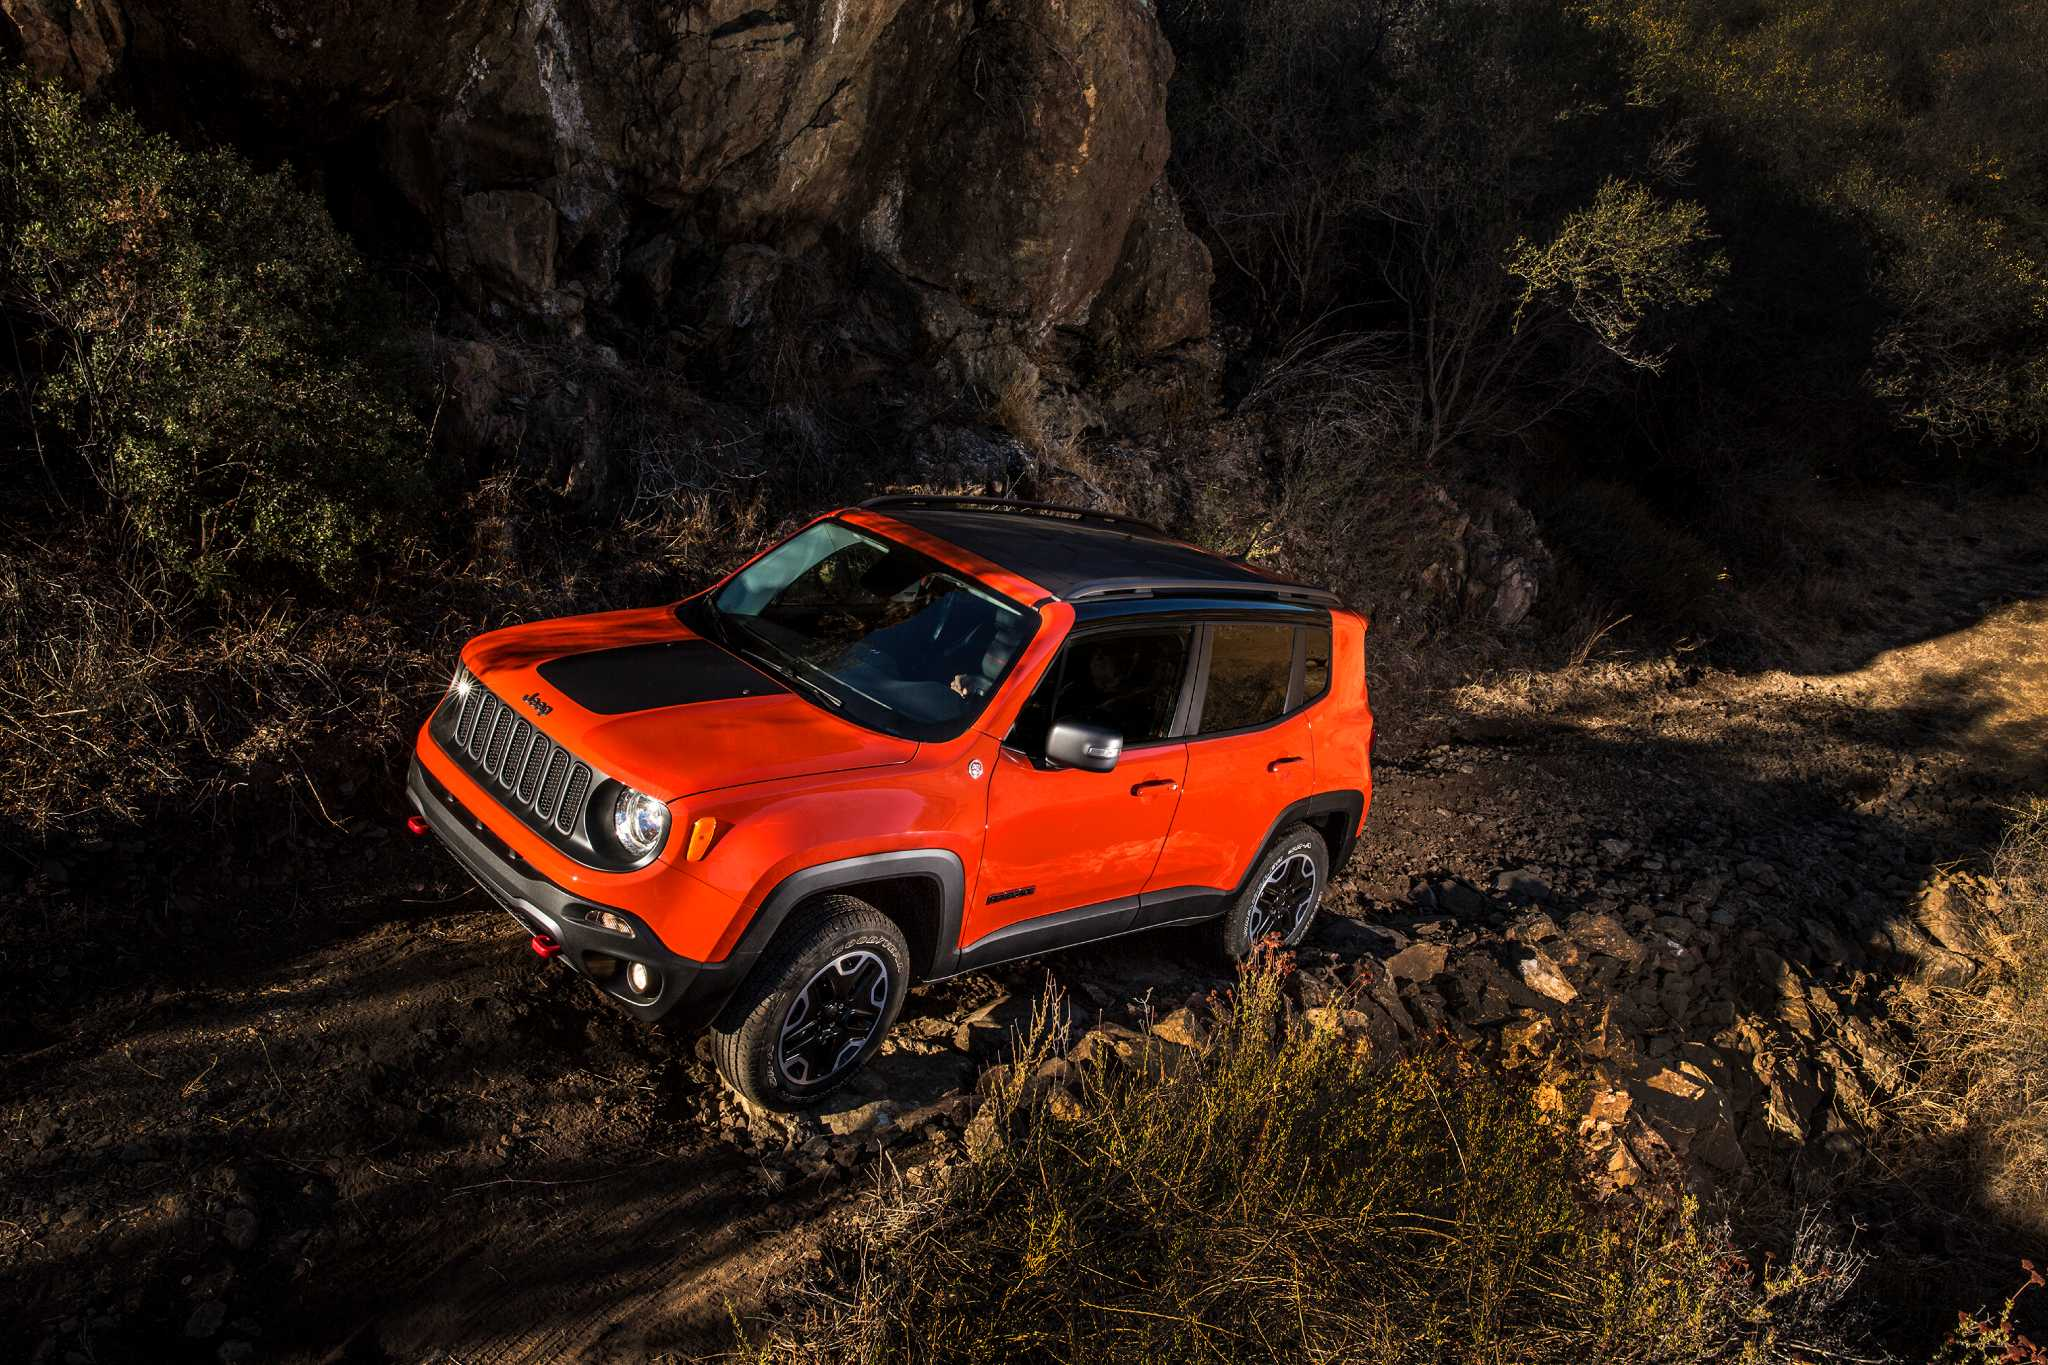 On the road: Jeep Renegade Trailhawk model designedto handle tough off-road assignments